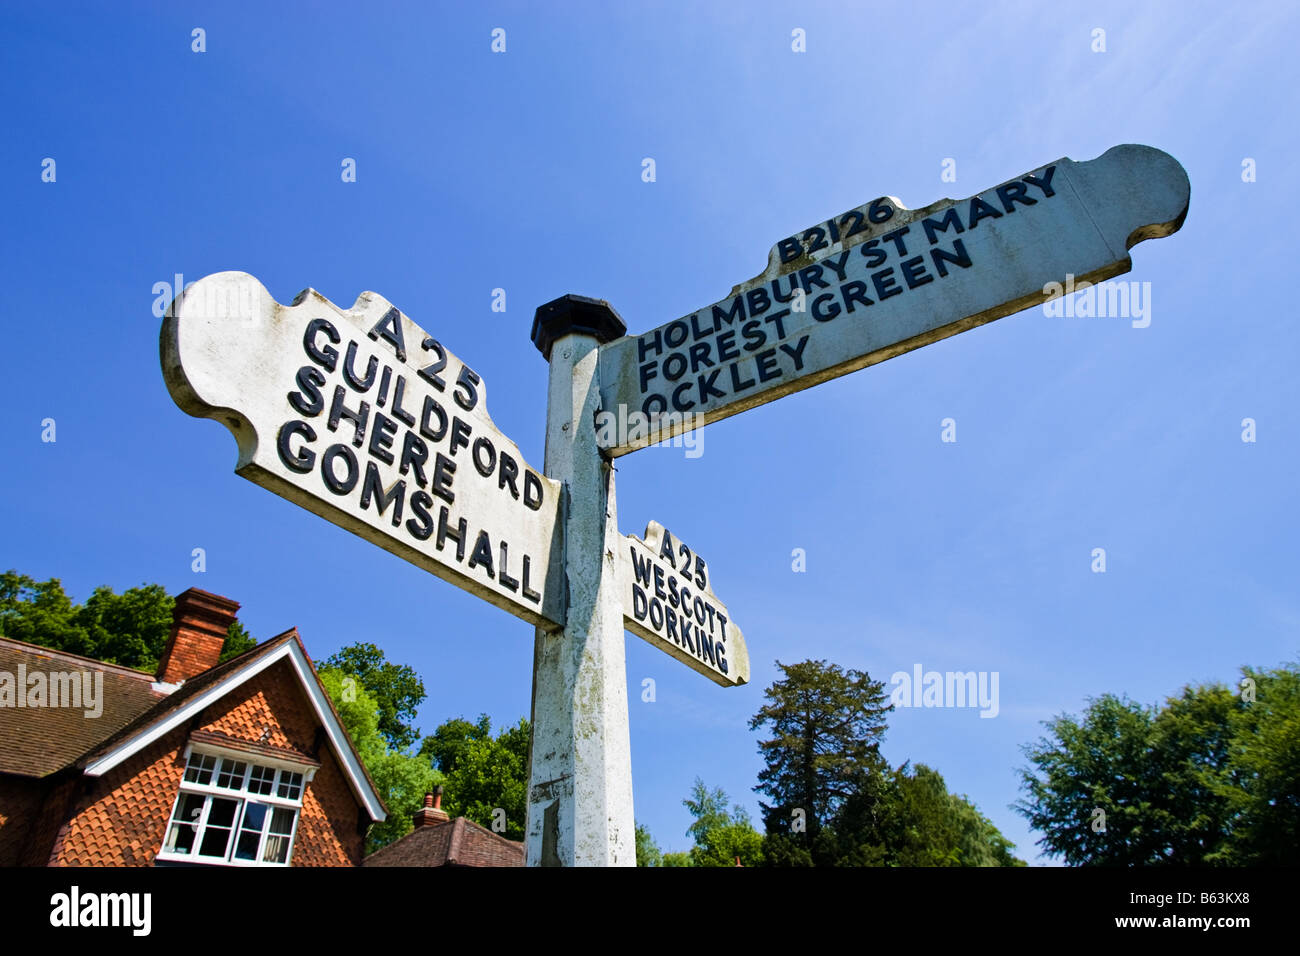 Signpost giving directions to local villages at Abinger Hammer, Surrey, England, UK - Stock Image